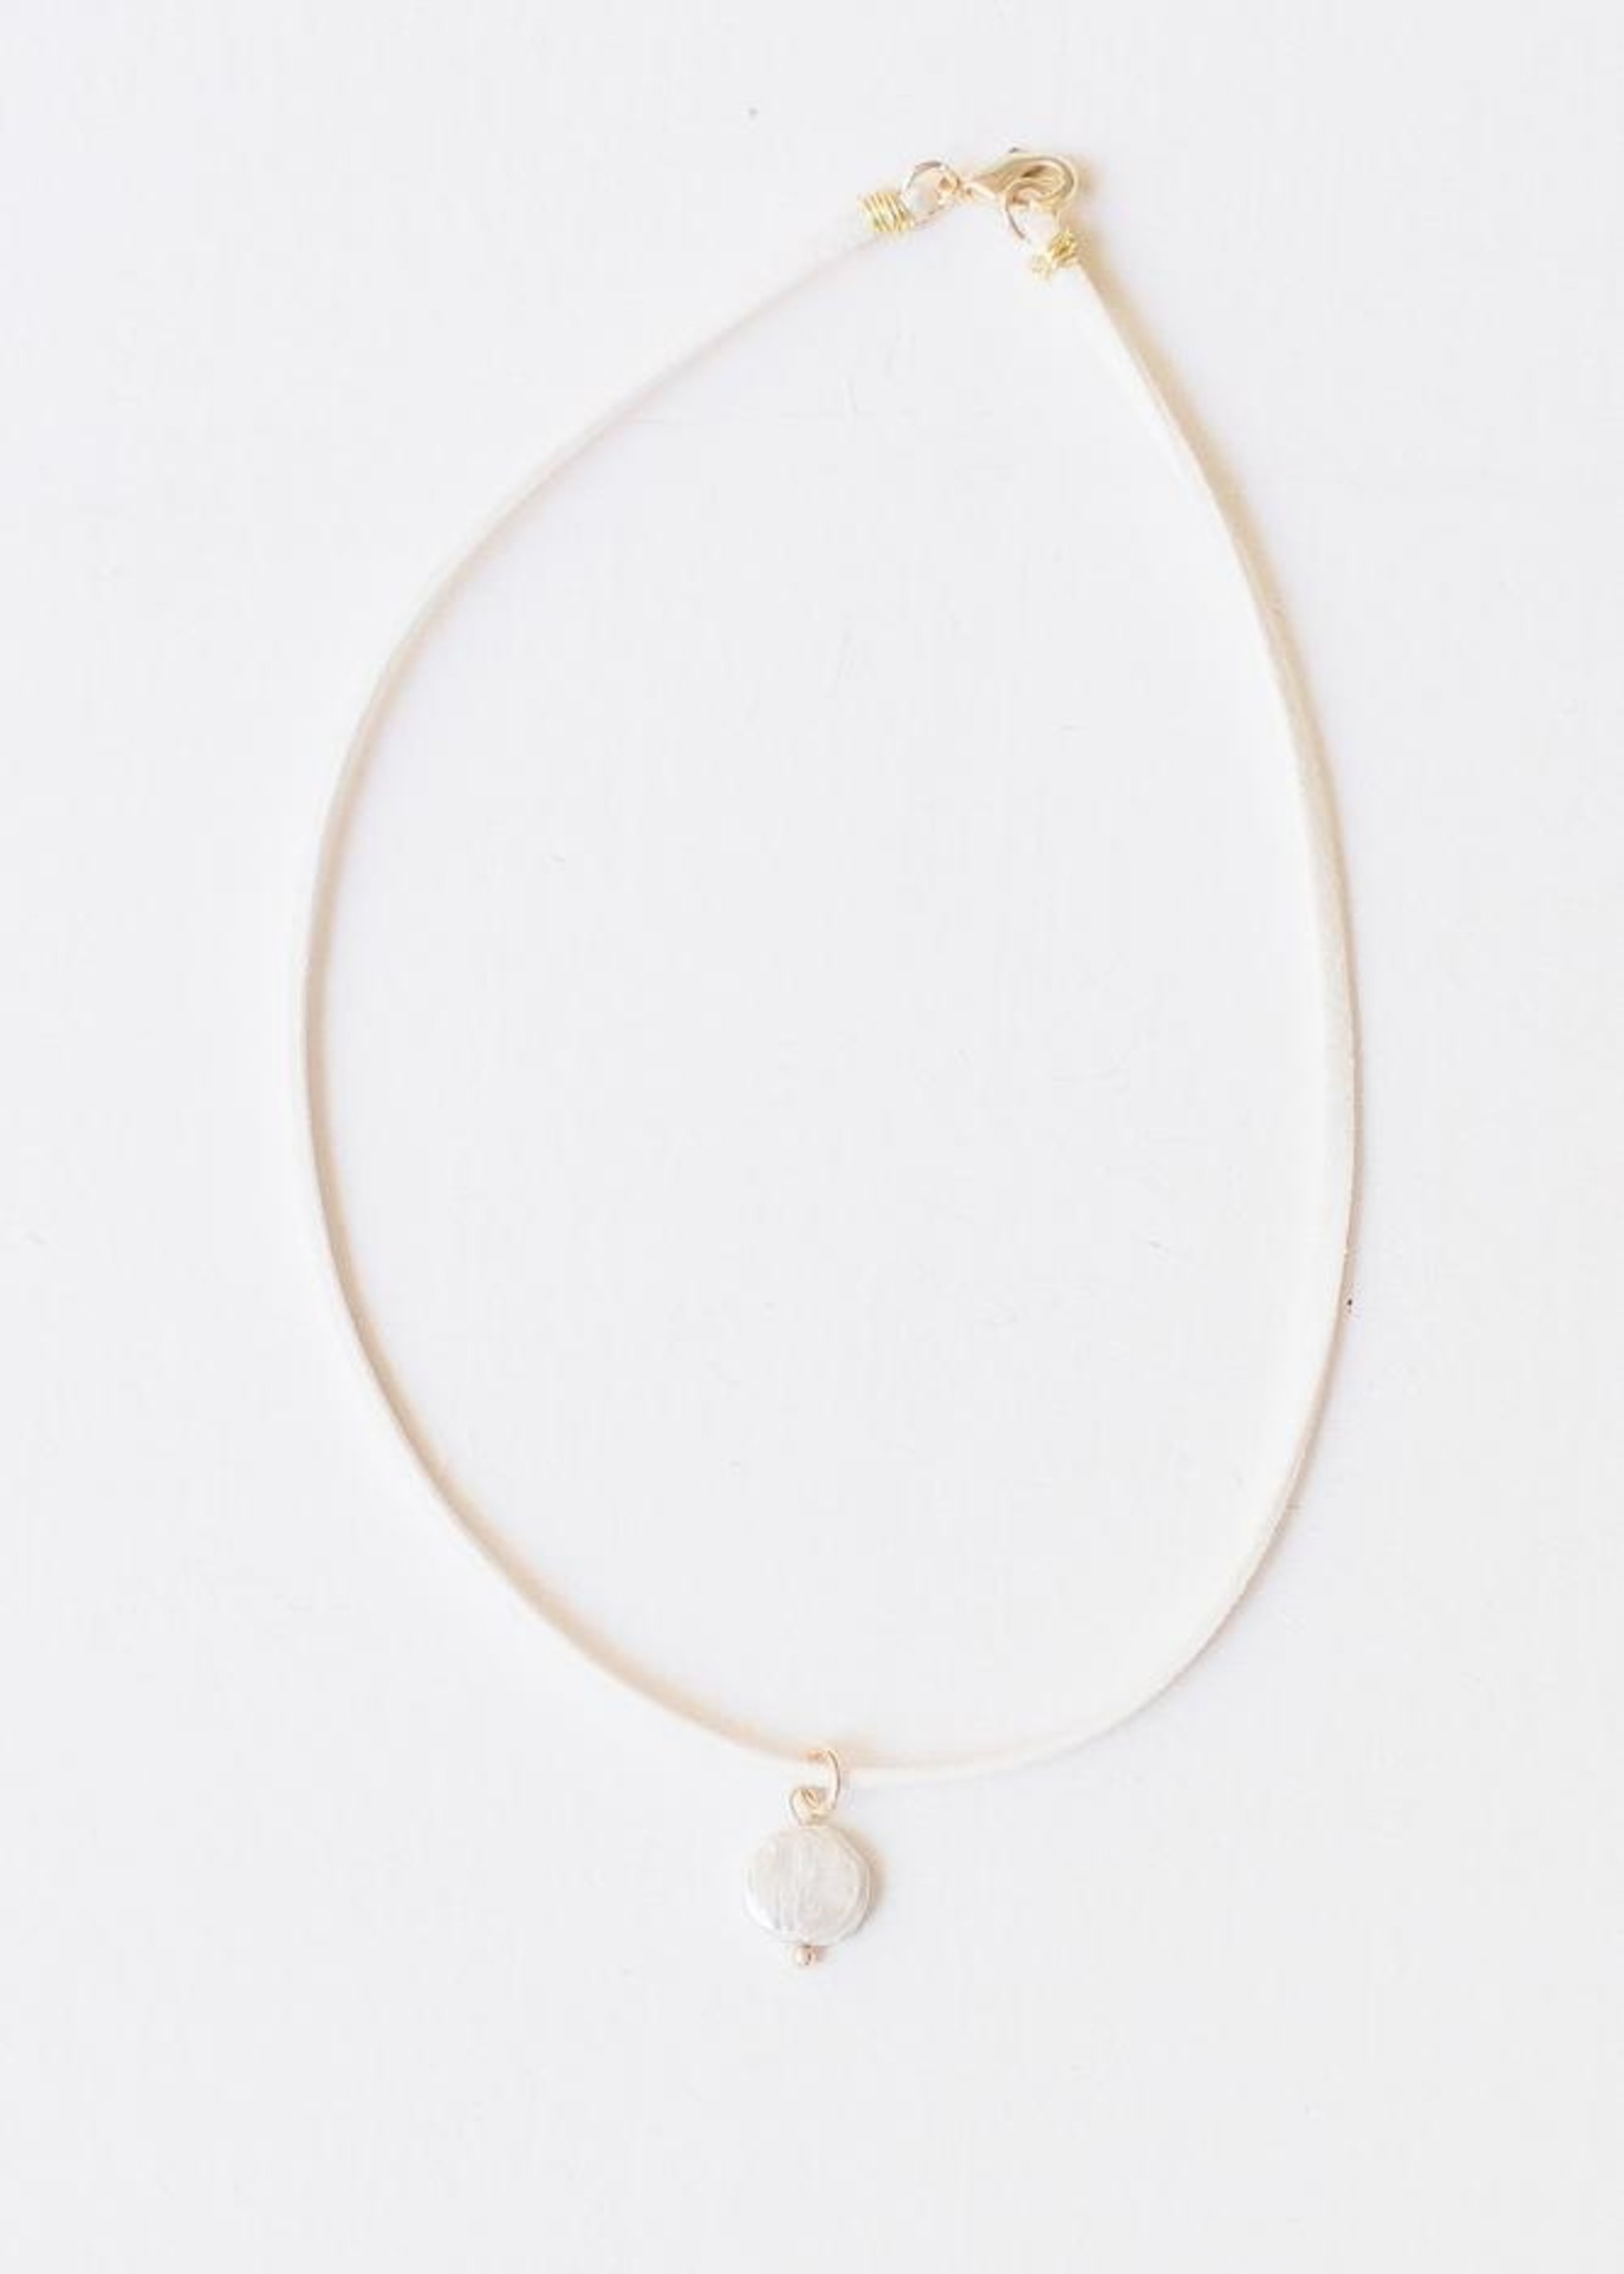 Leslie Curtis Jewelry Designs Rose White- Pearl Necklace